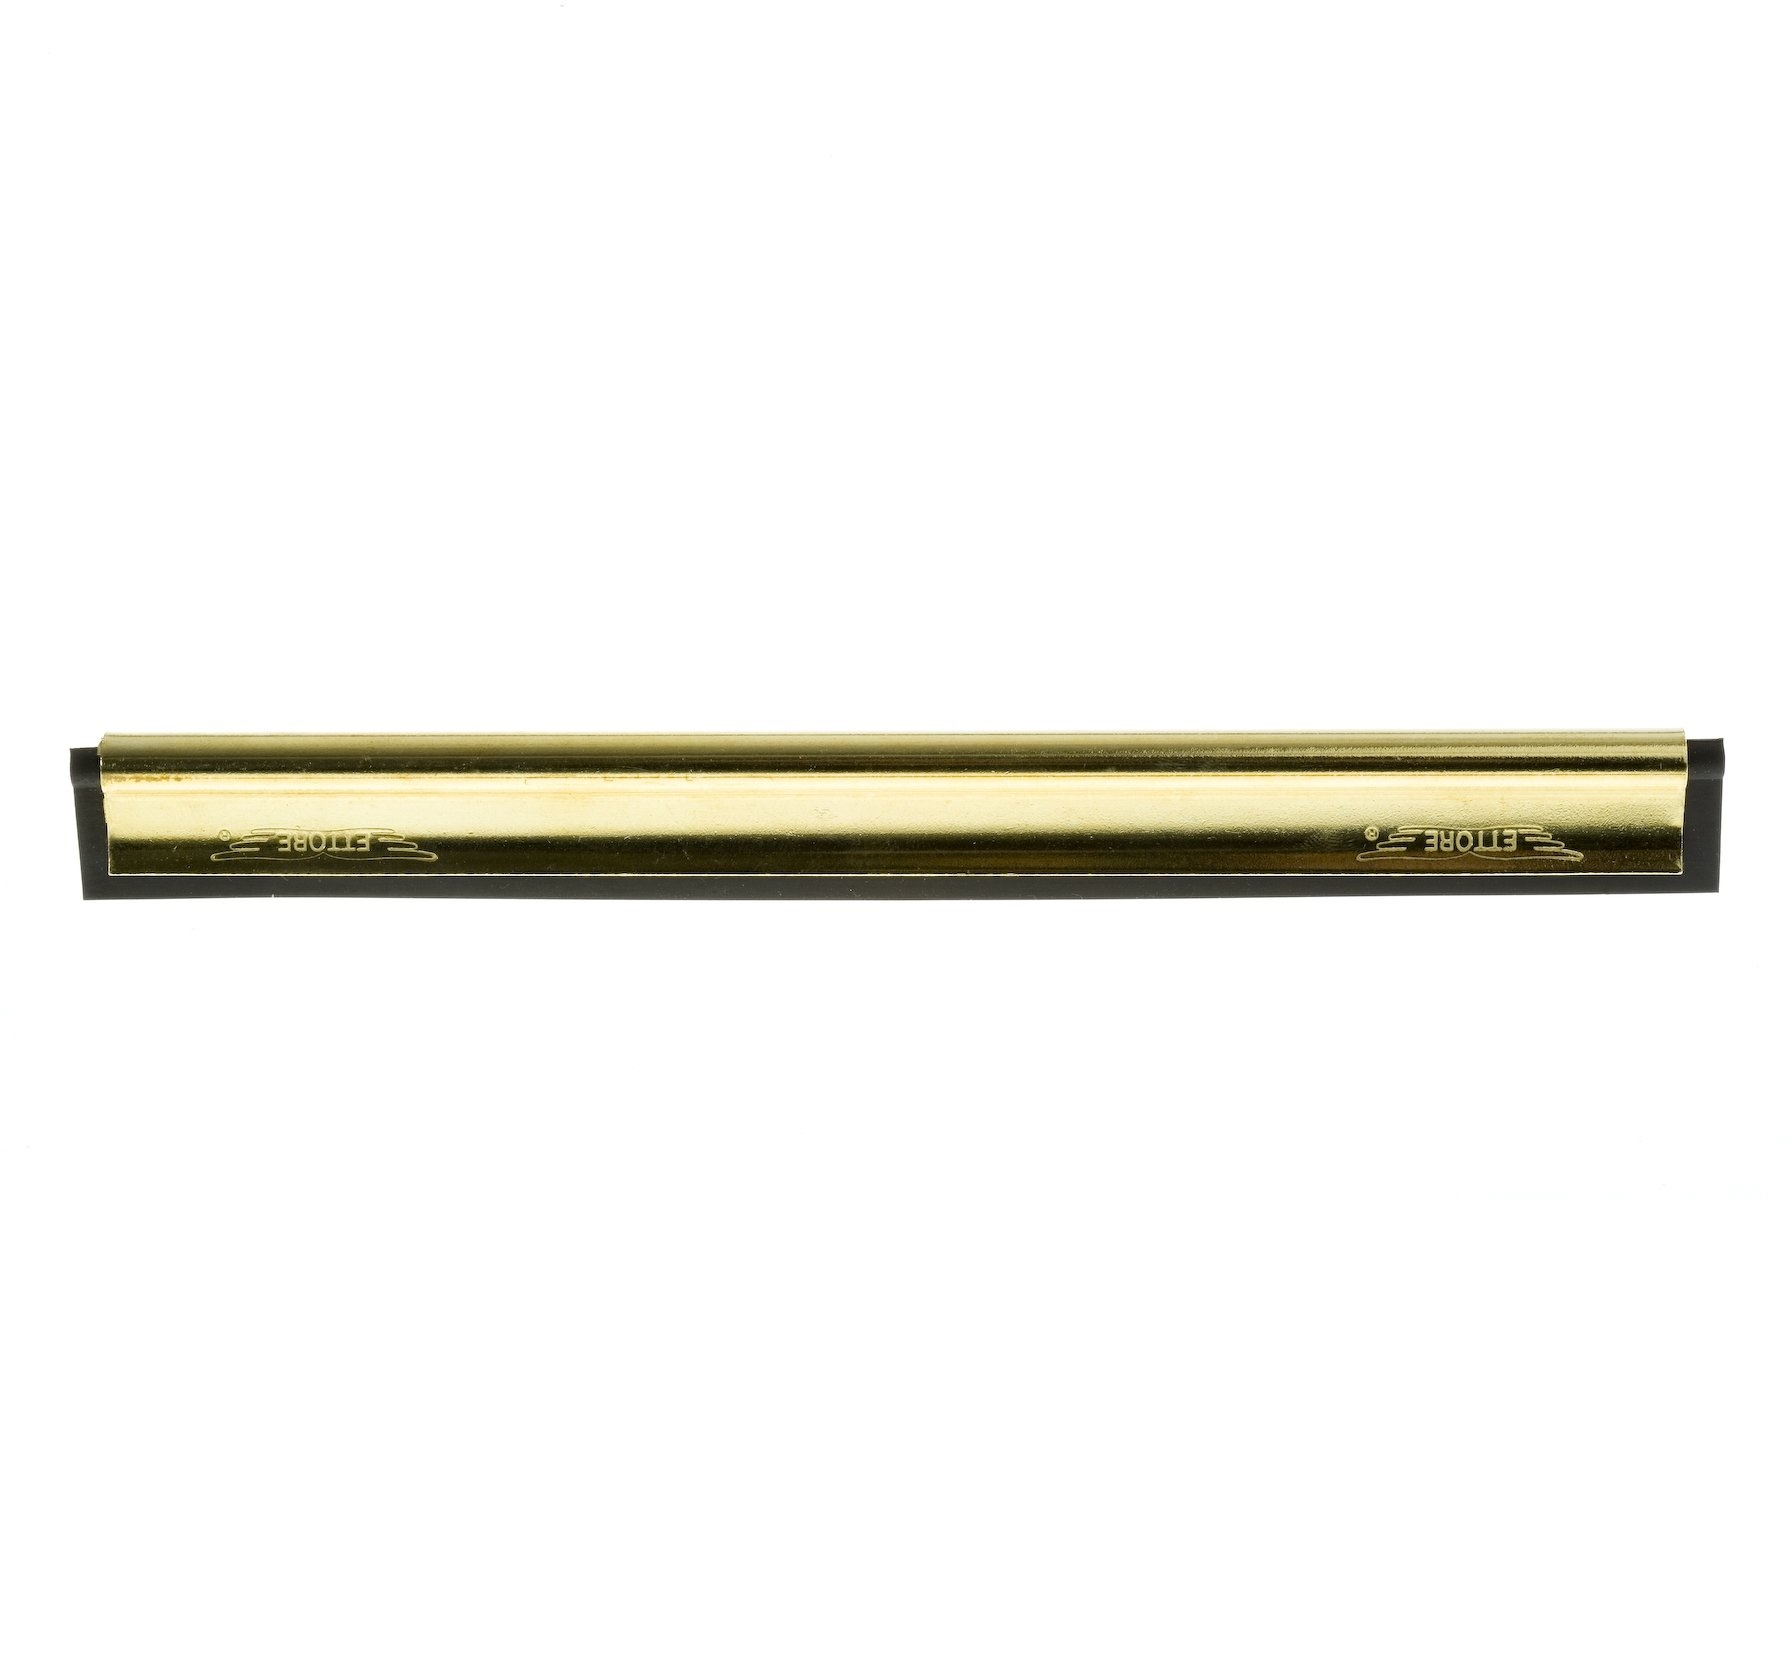 Ettore-Master-Brass-Channel---Rubber-18-inch